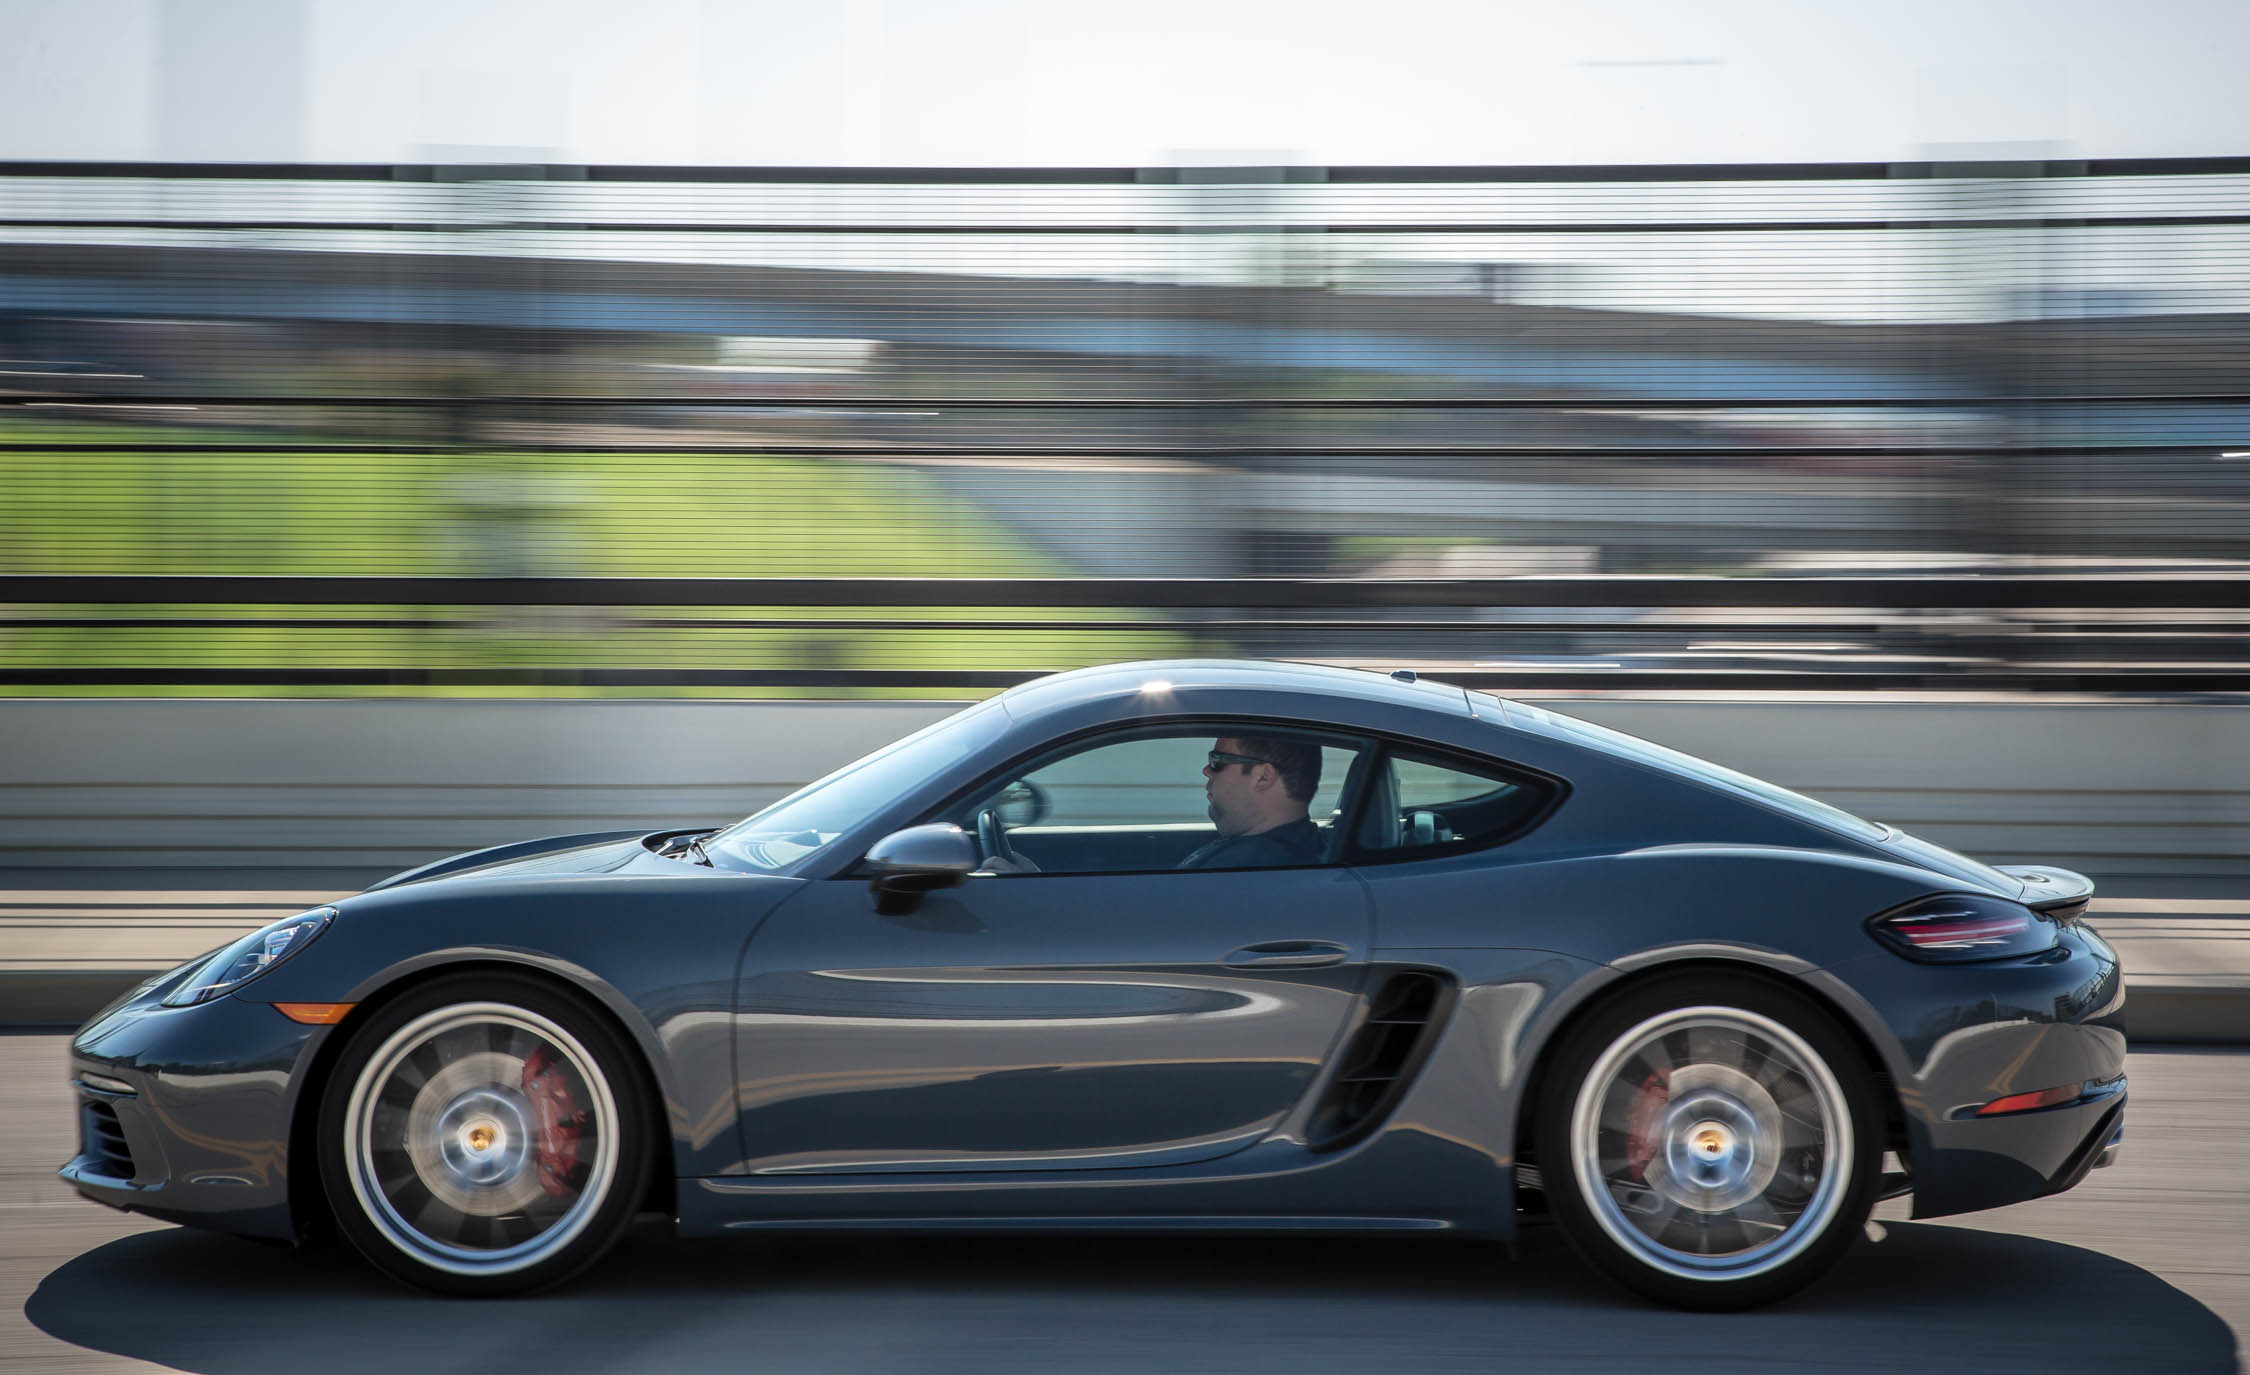 2017 Porsche 718 Cayman S (View 8 of 9)